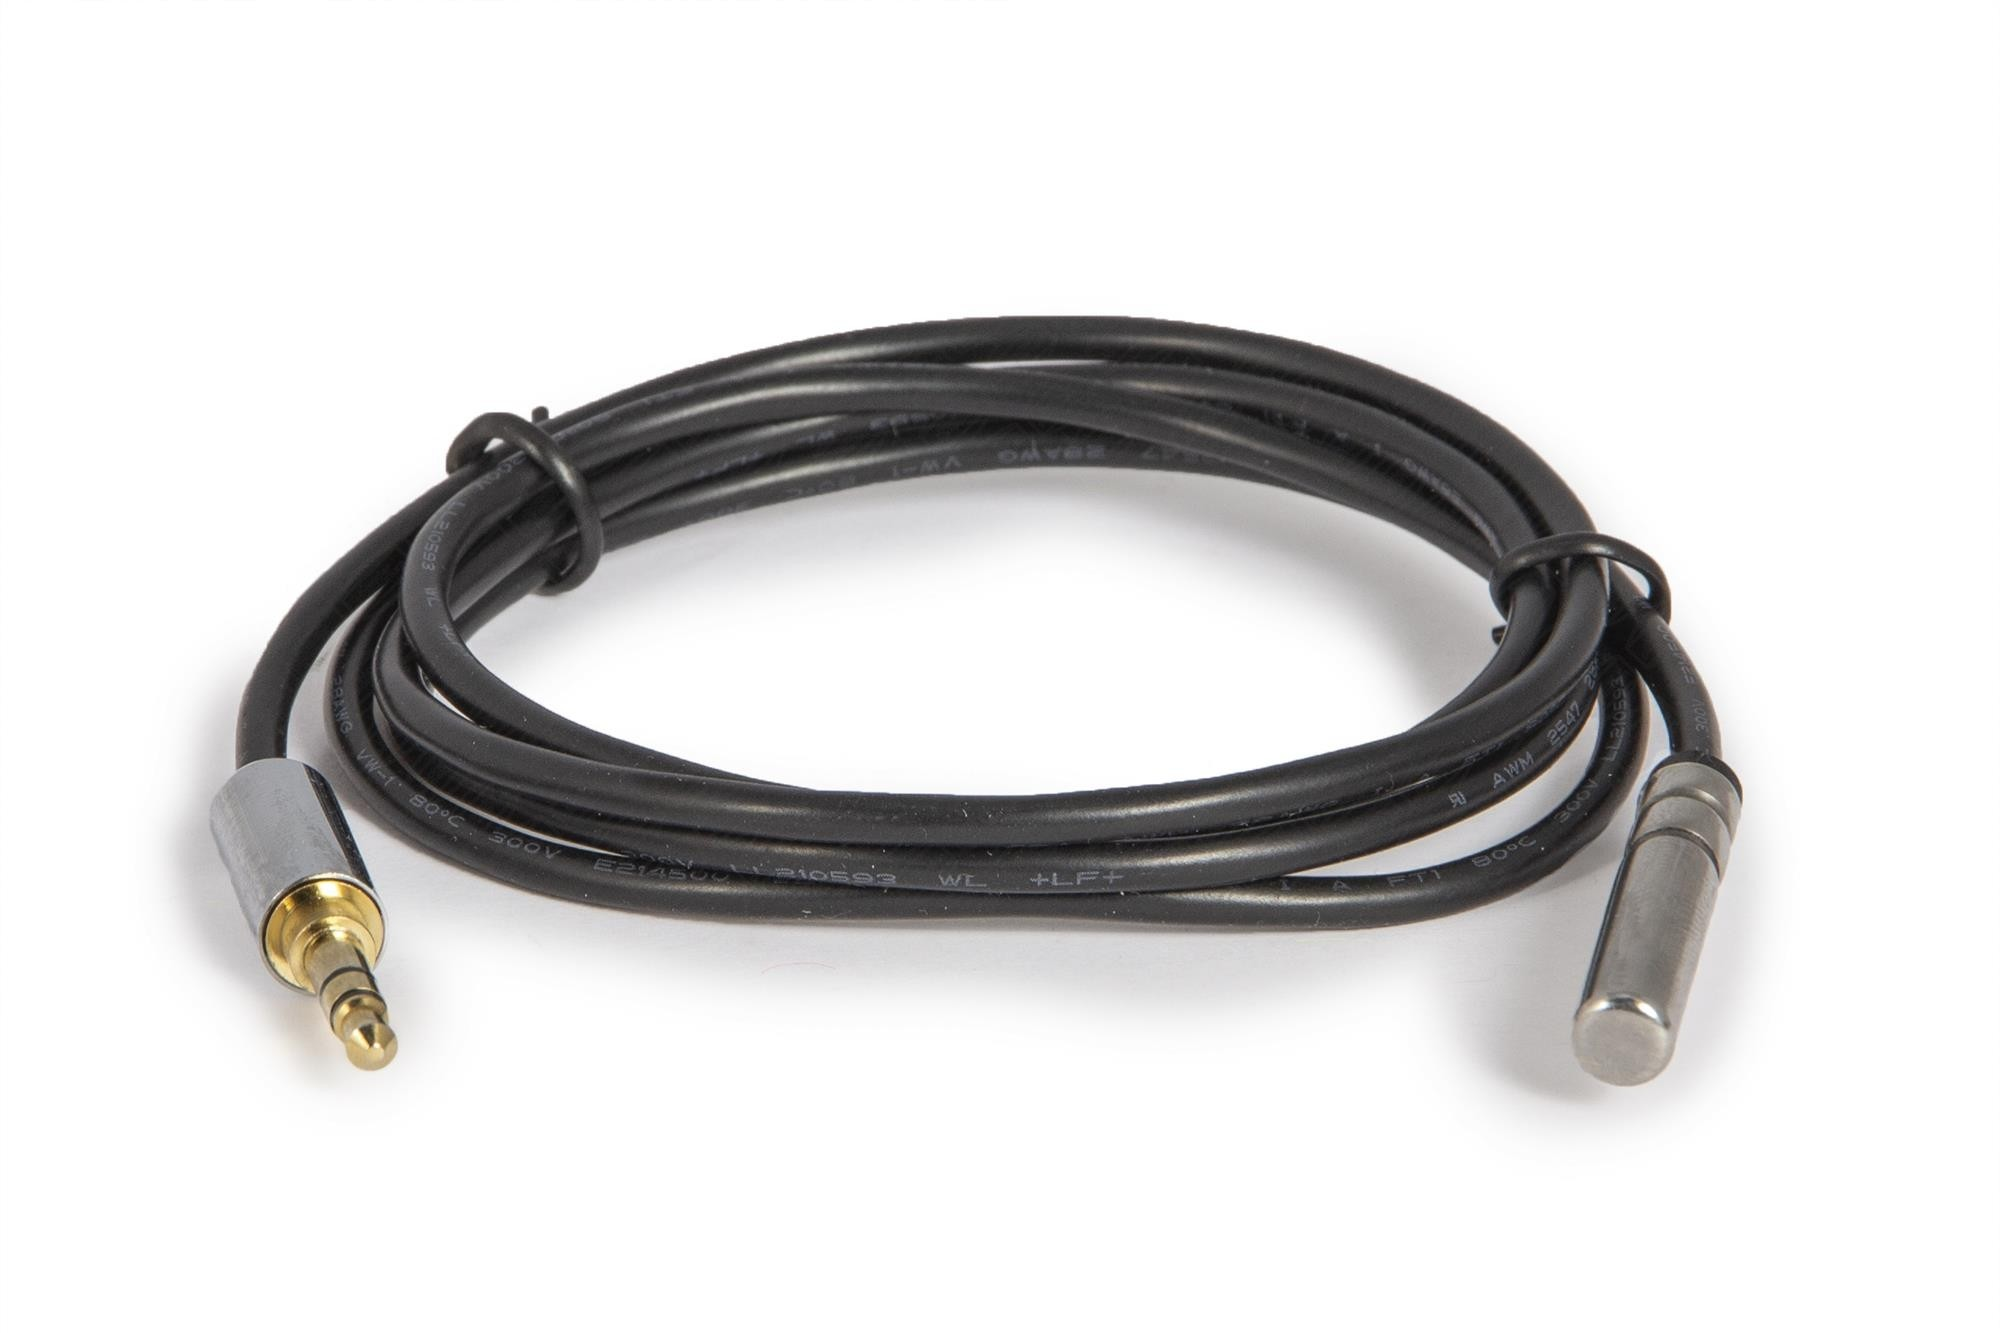 Temperature sensor for Steeldrive II, cable included